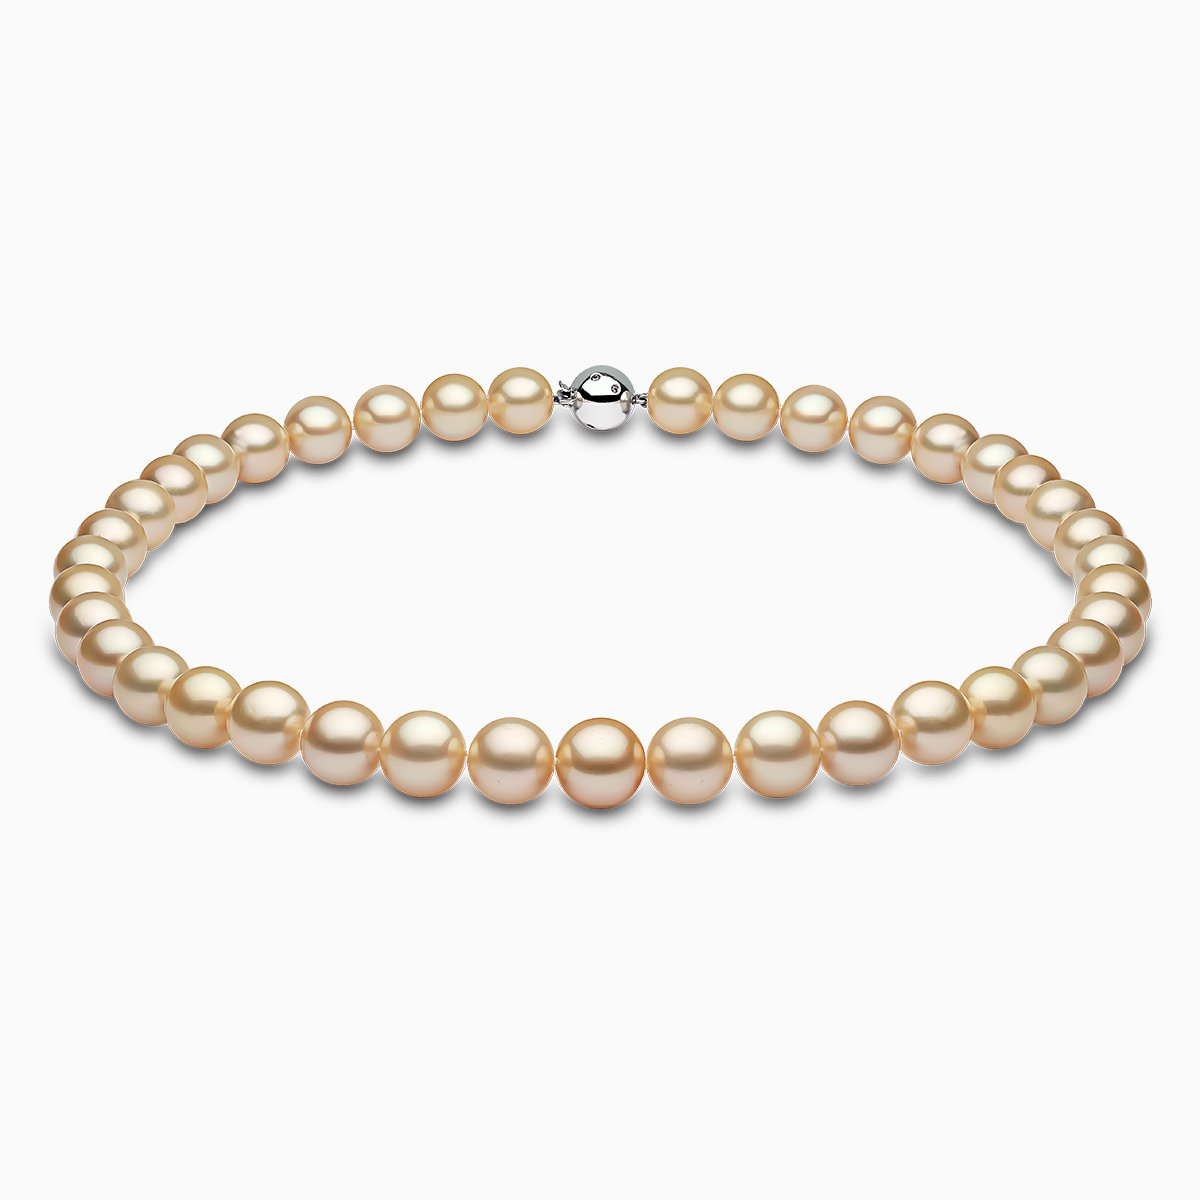 Yoko London Classic Golden South Sea Pearl Strand